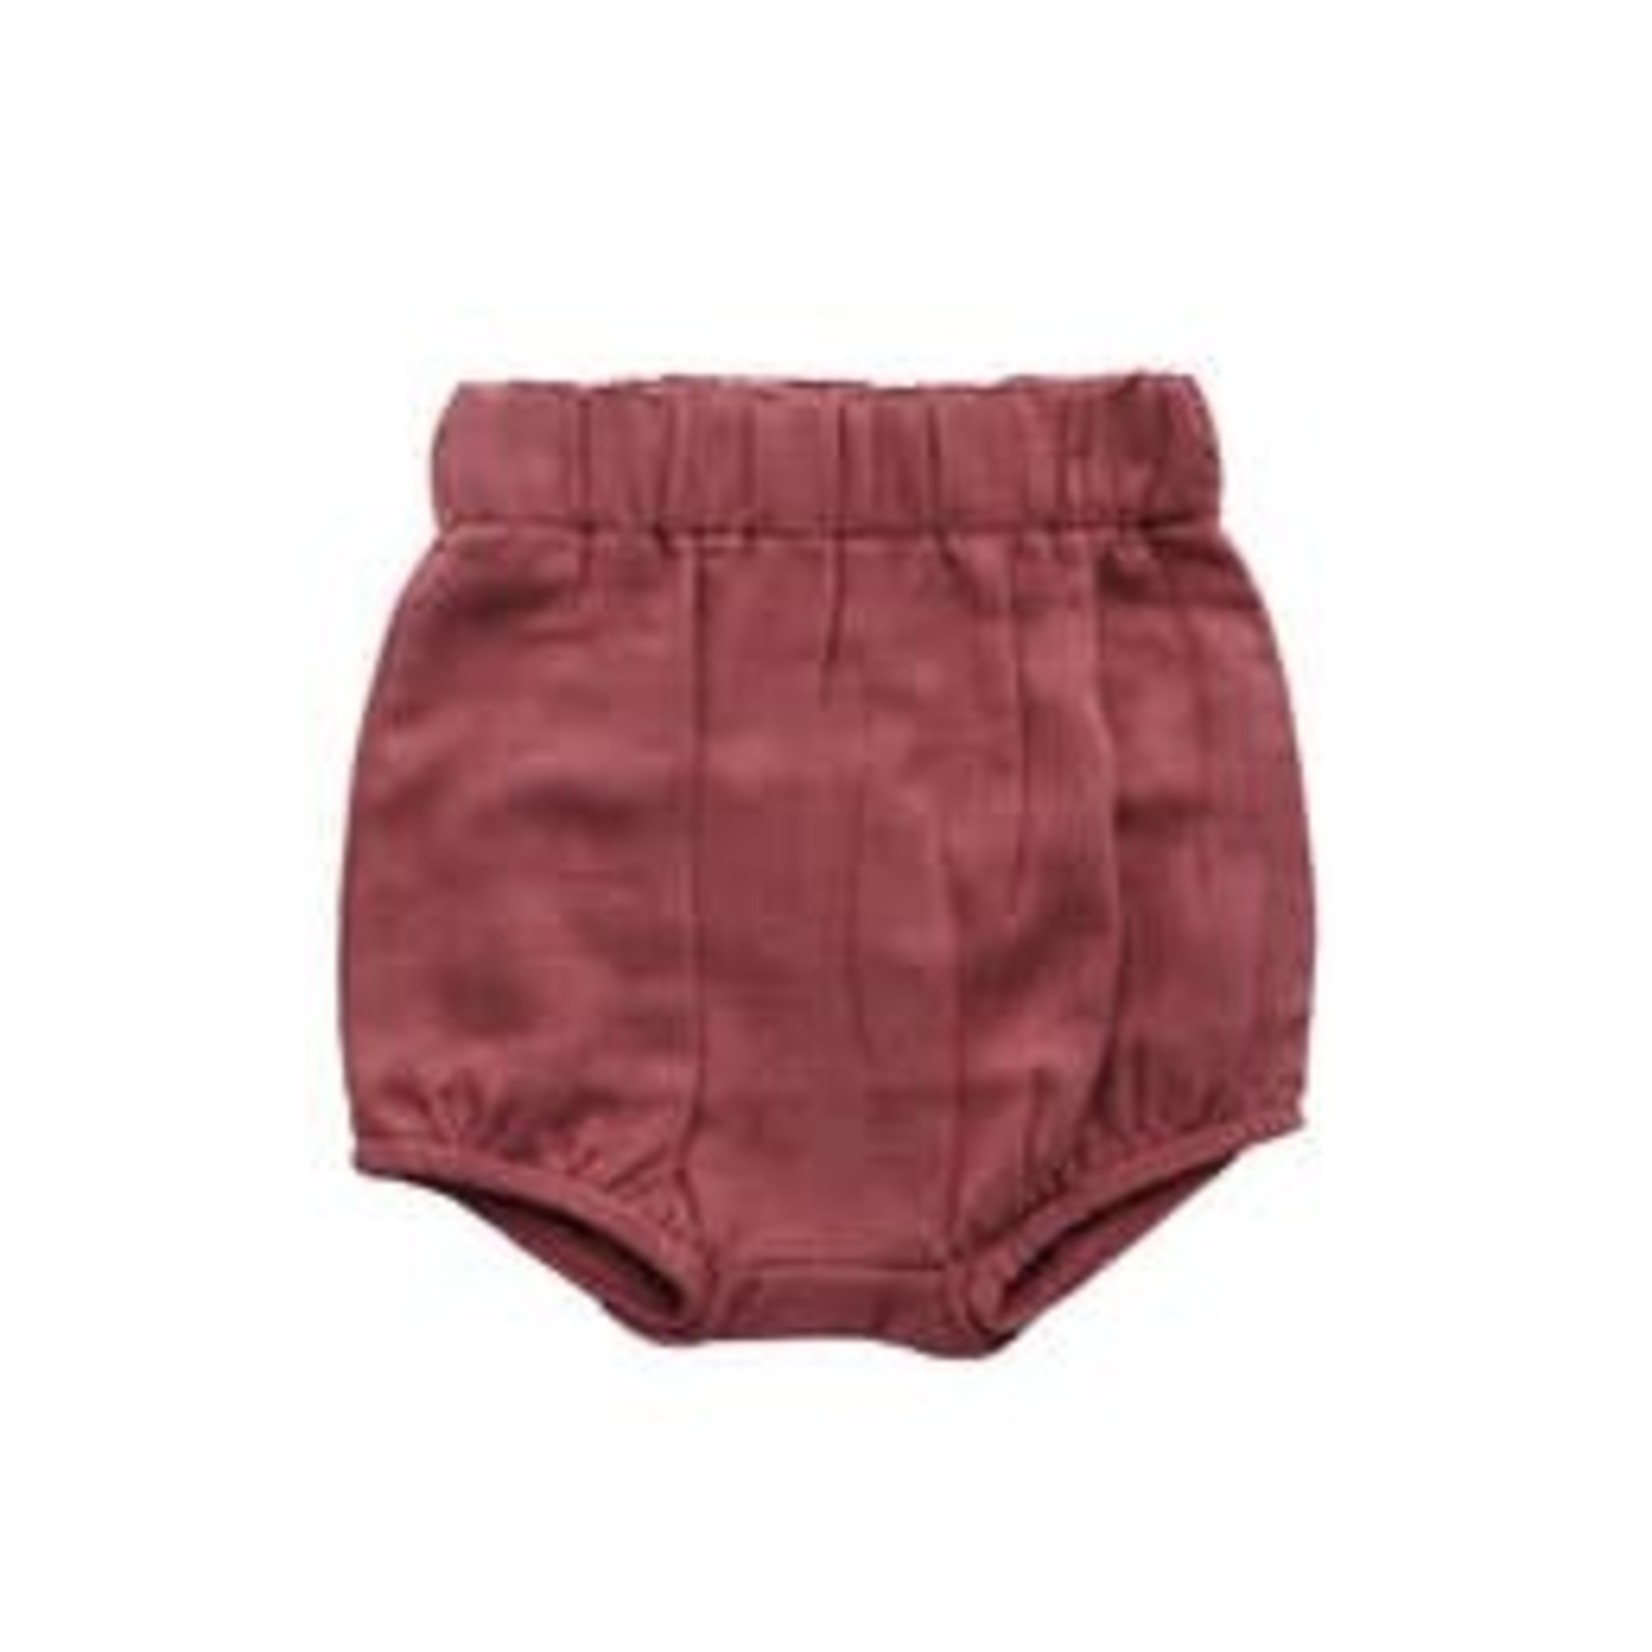 Emerson and Friends Brick Gauze Baby Bloomers